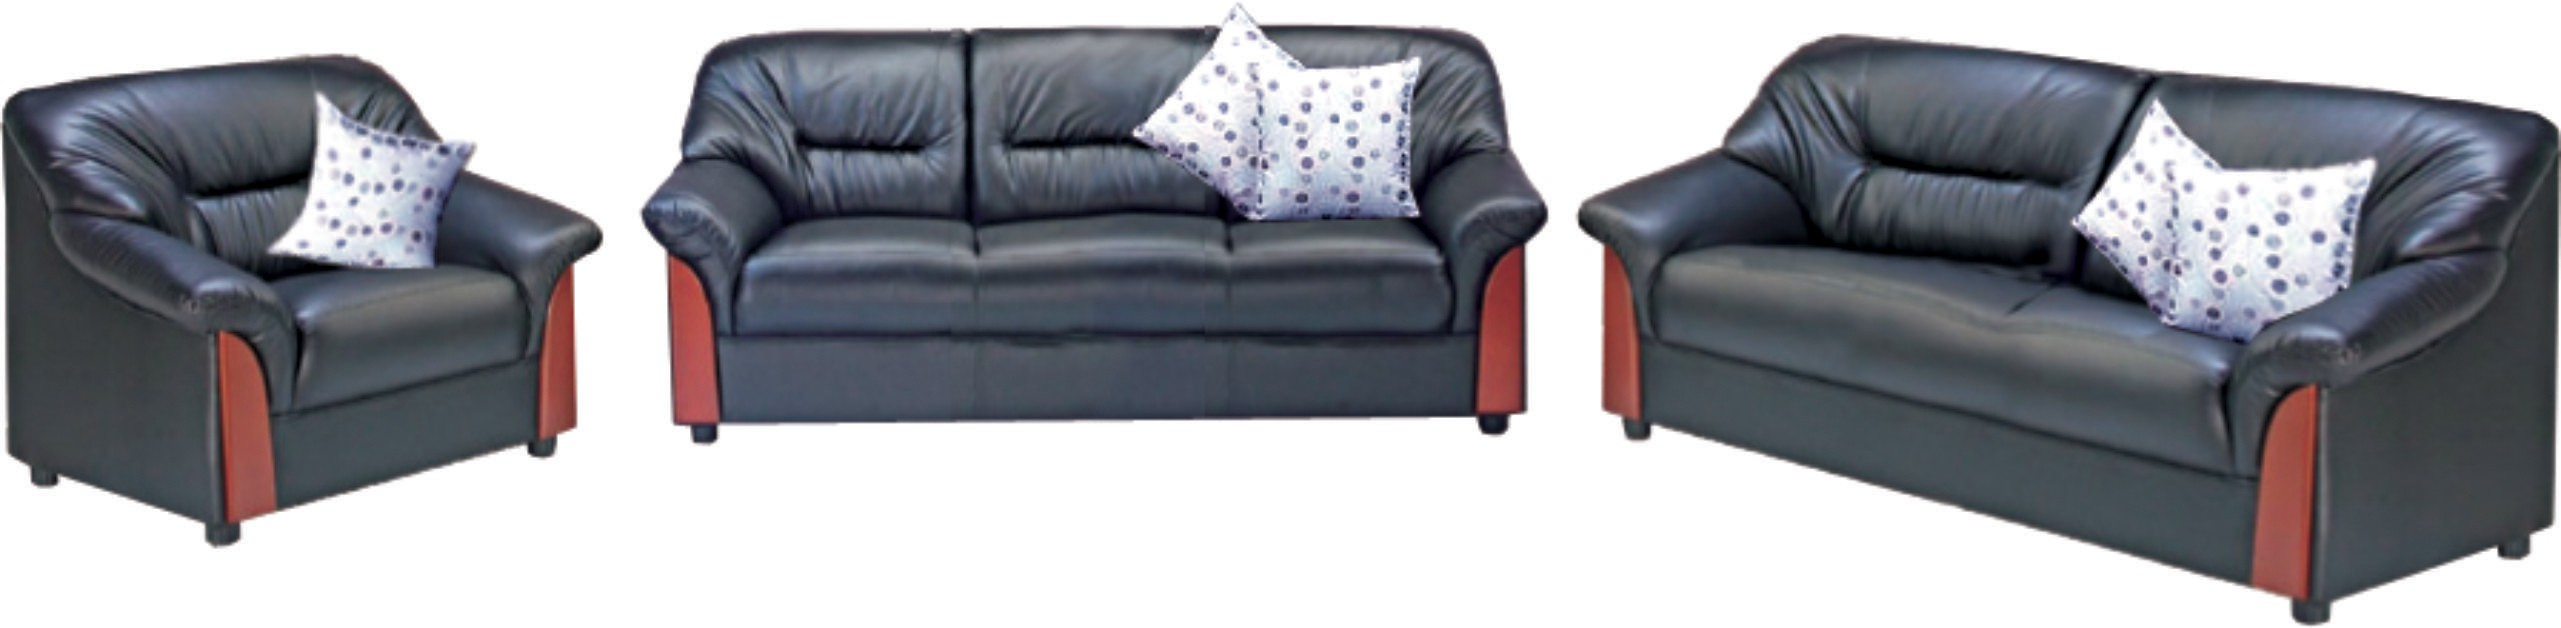 Godrej interio parto sofa set solid wood 3 2 1 sofa set furniture price in indian cities Godrej home furniture price list bangalore